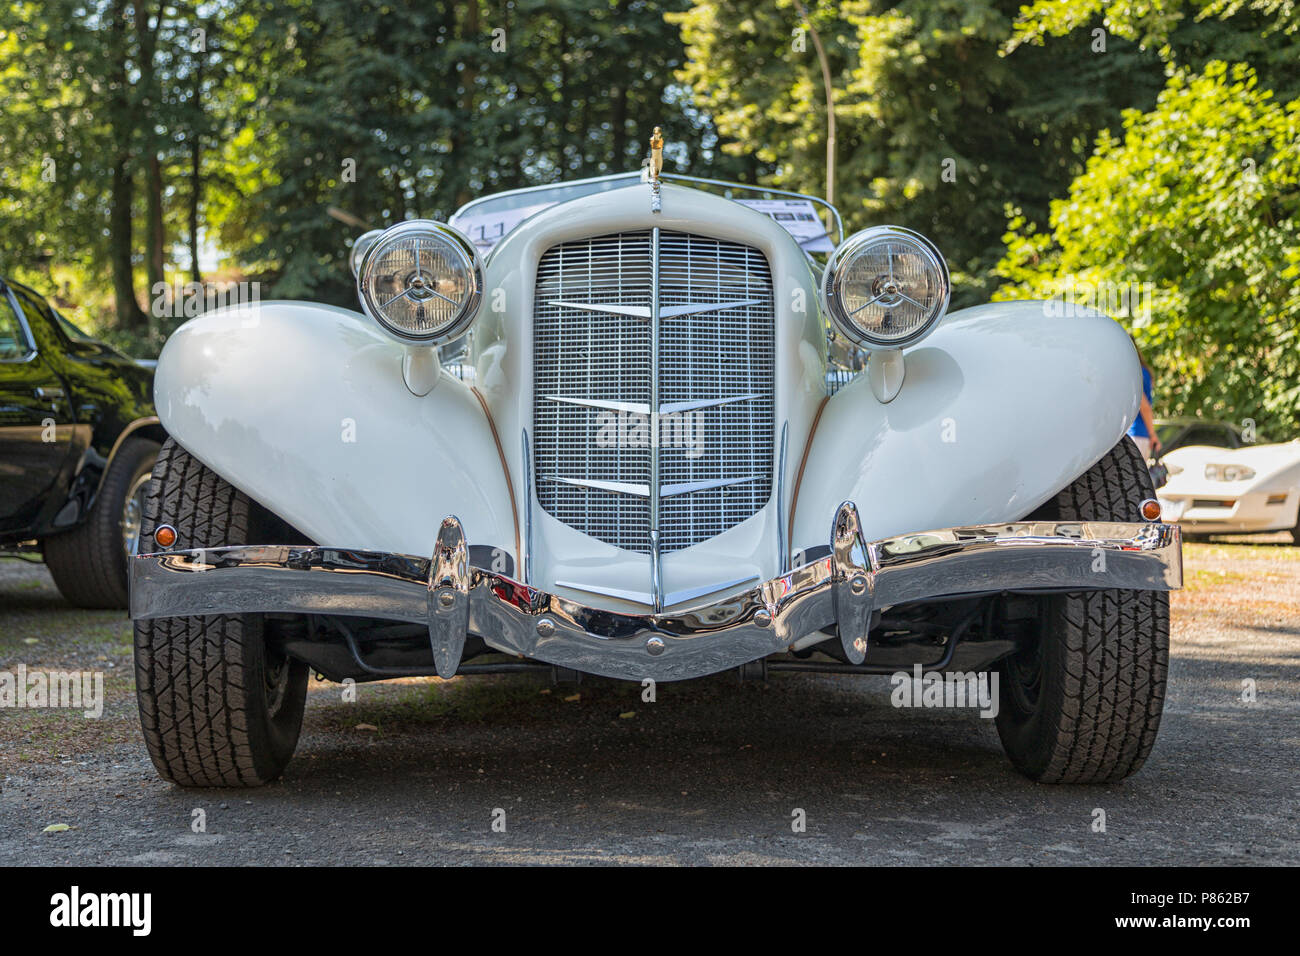 Stade, Germany - July 8, 2018: Fronta view of a vintage 1936 Auburn Speedster Boattail Super-Charged at 5th Summertime Drive US car meeting. - Stock Image